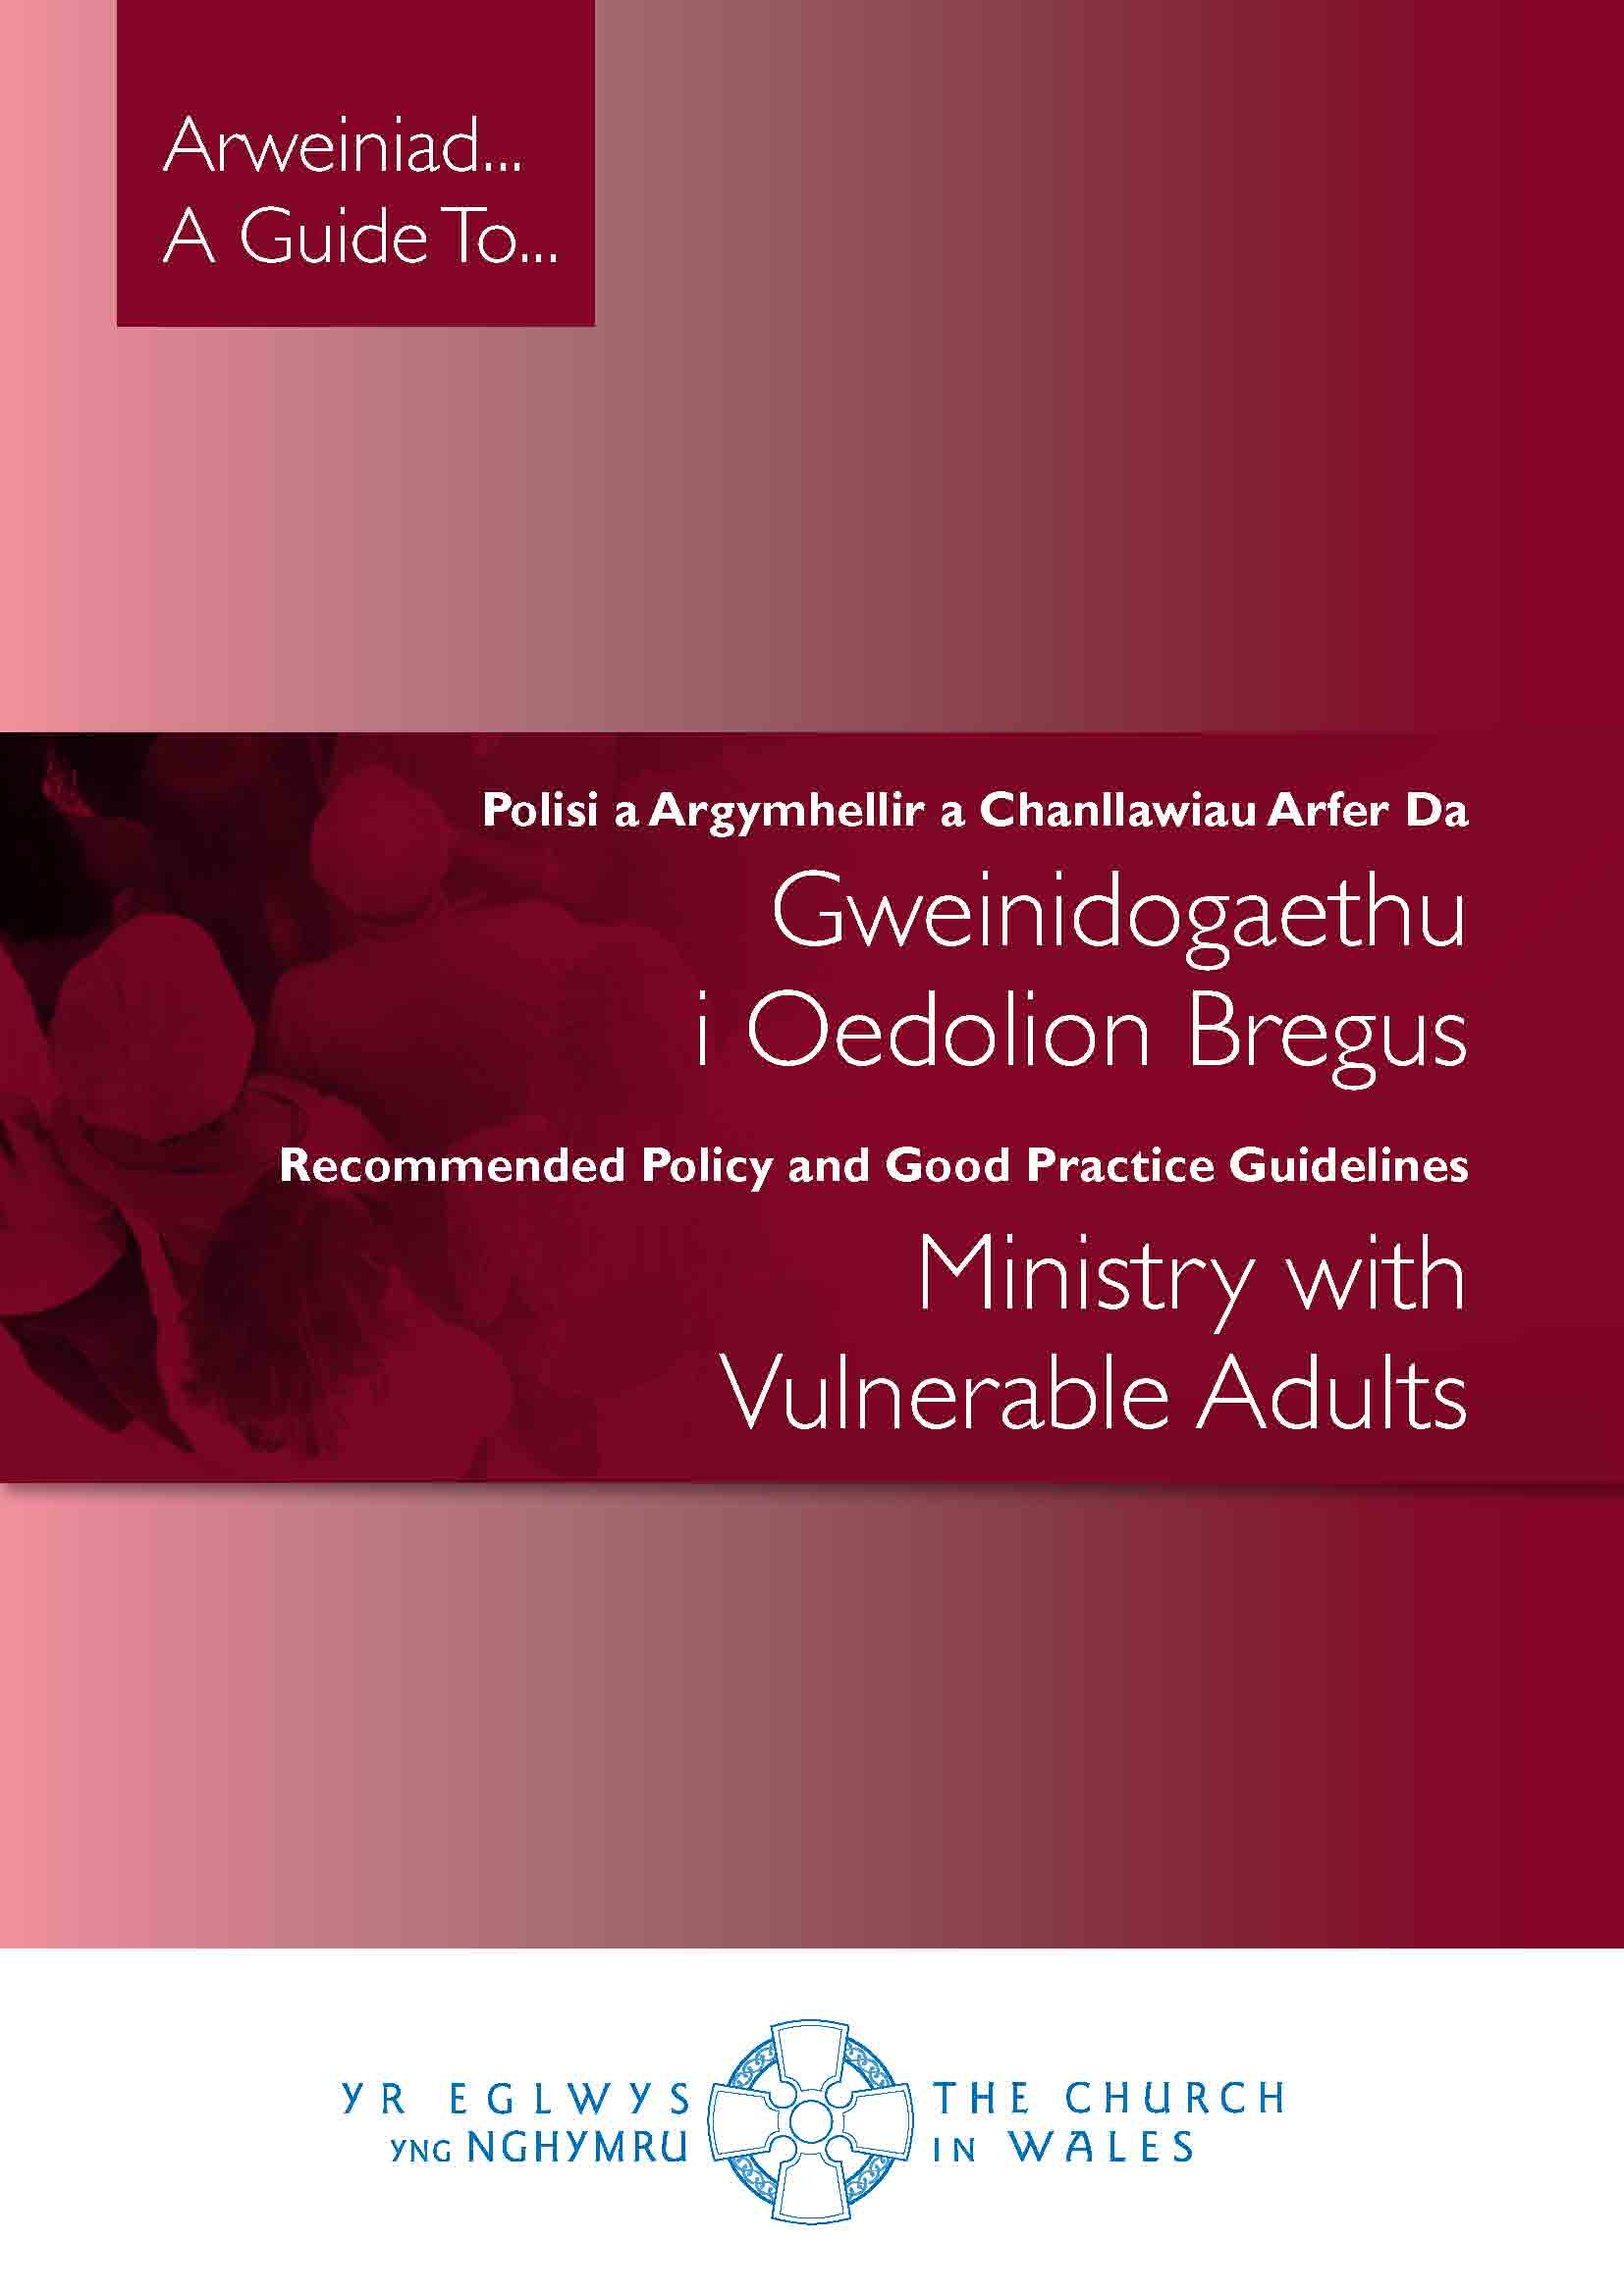 Vulnerable Adults The Church In Wales